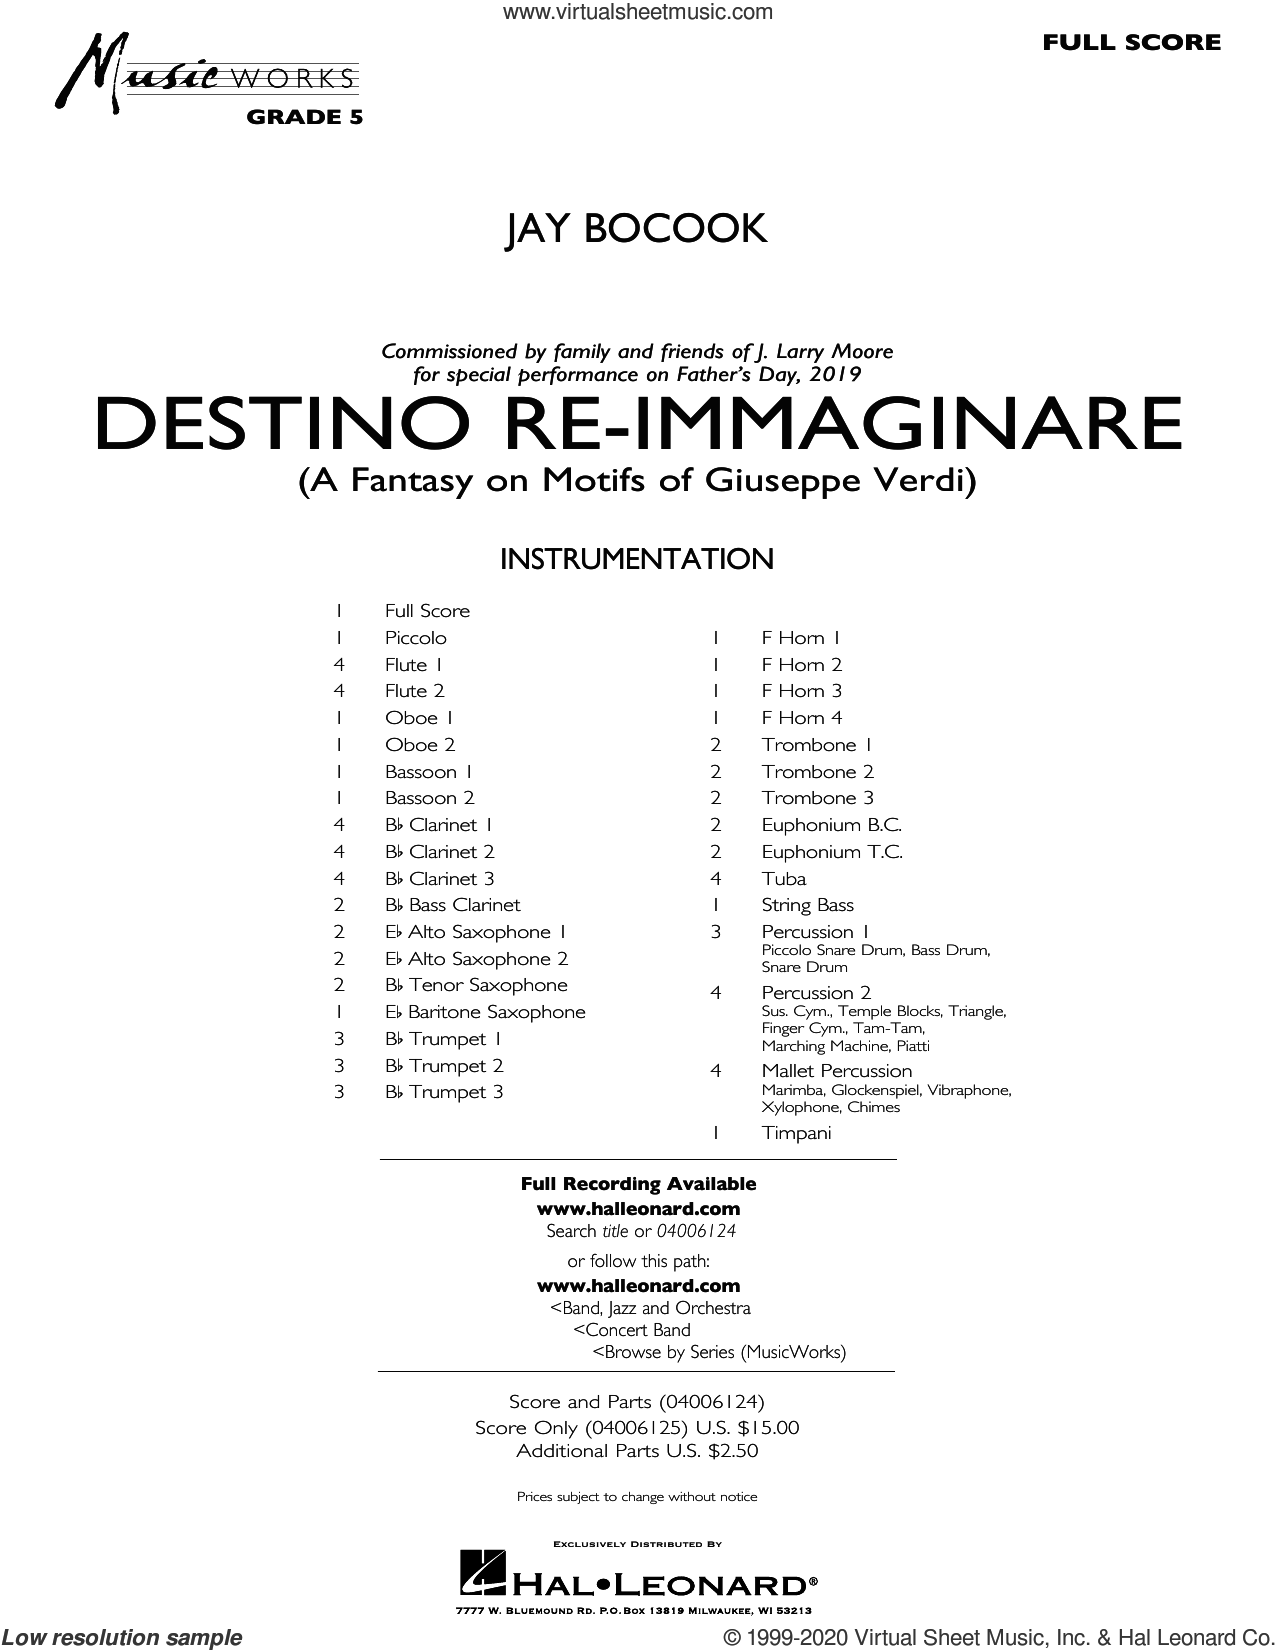 Destino Re-Immaginare (A Fantasy on Motifs of G. Verdi) (COMPLETE) sheet music for concert band by Jay Bocook, intermediate skill level